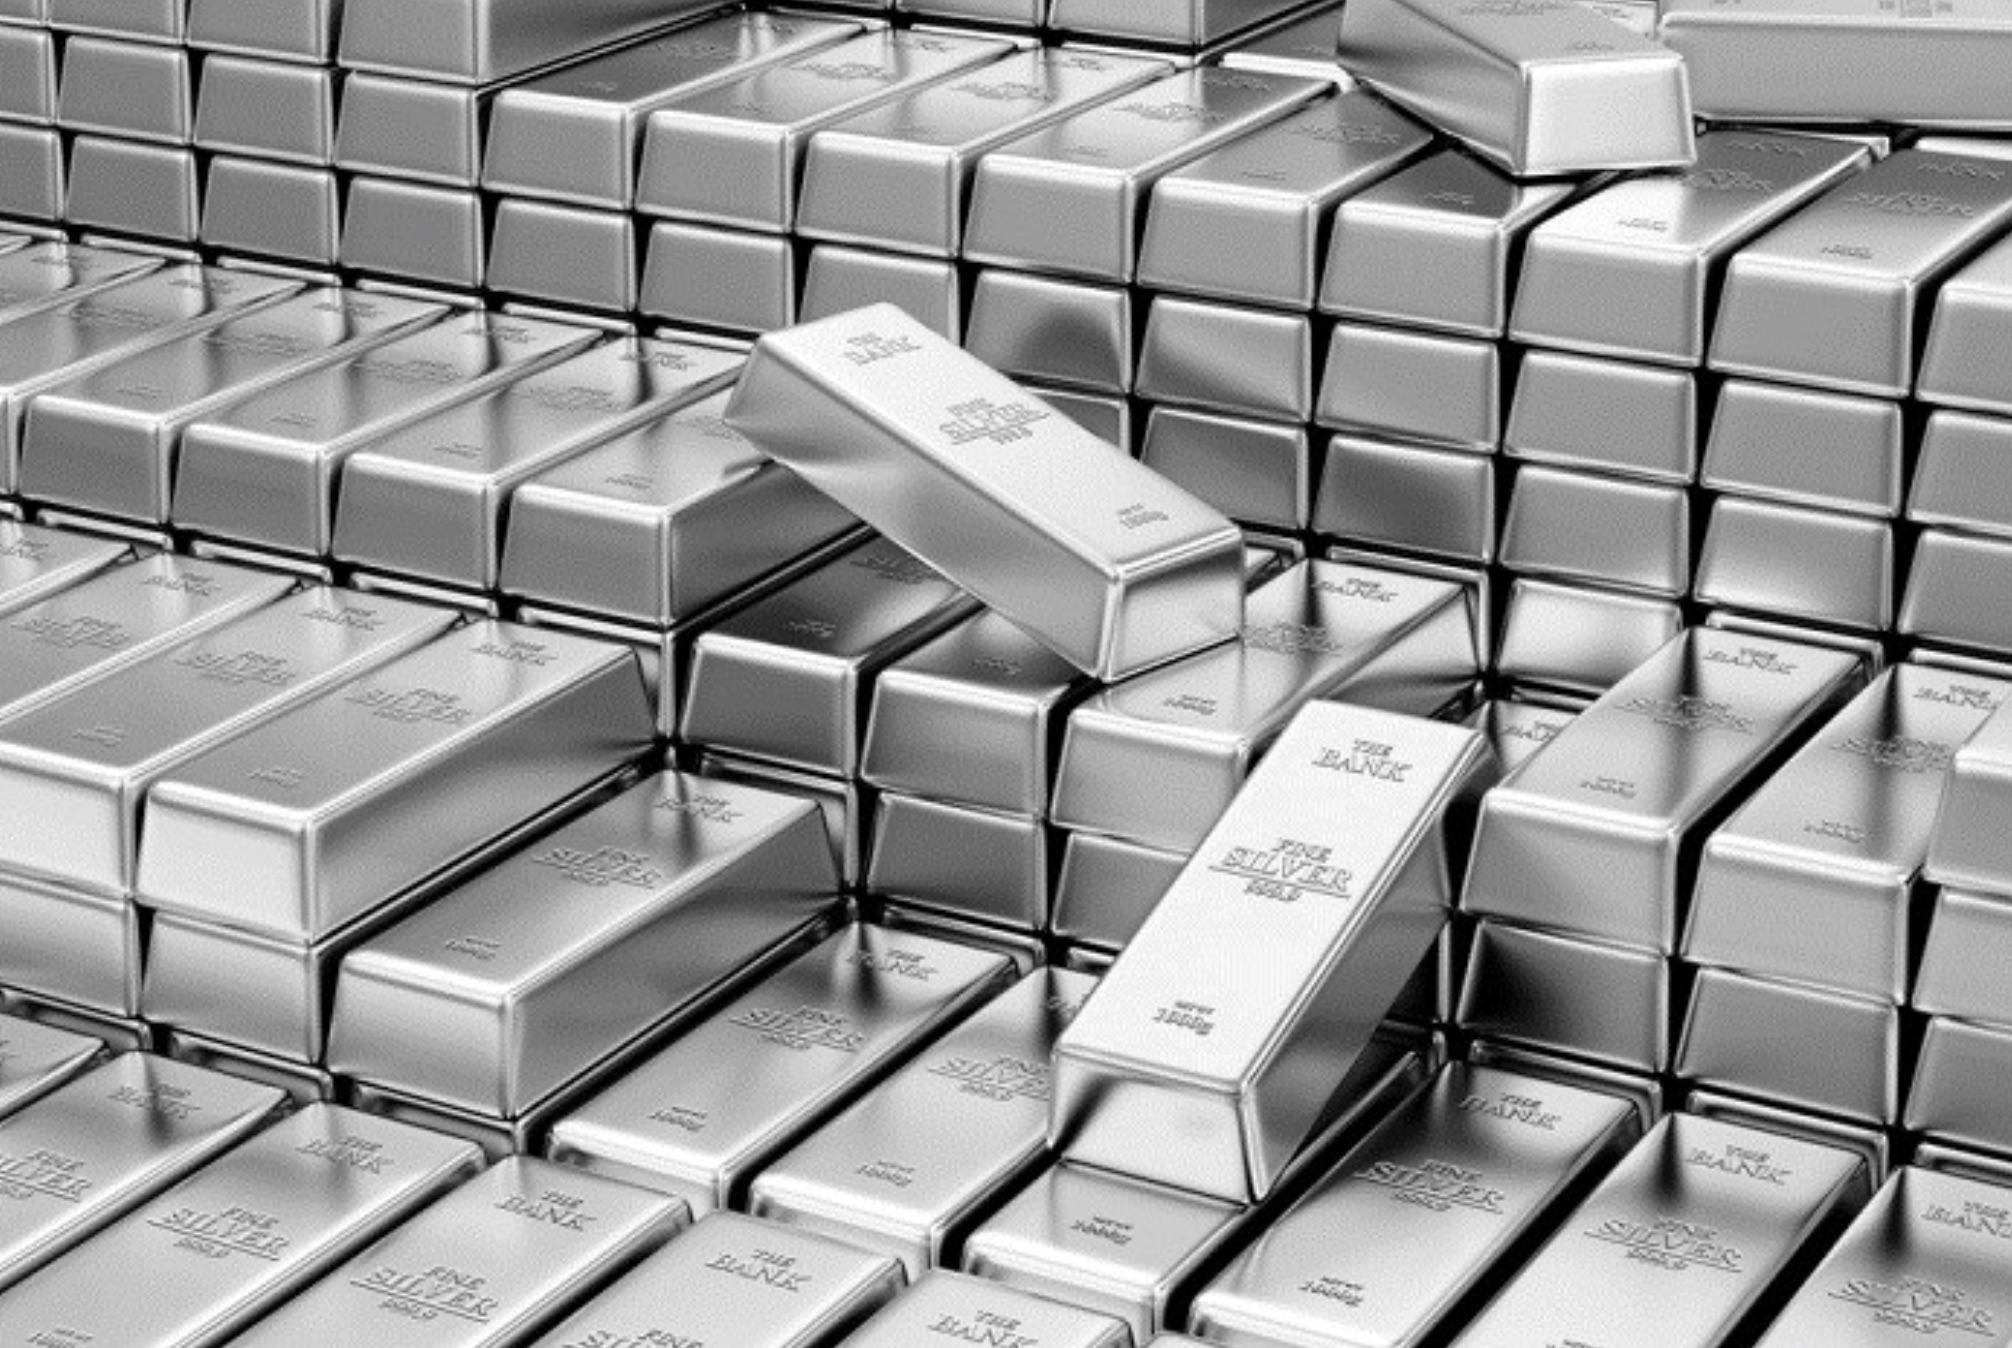 King World News - James Turk - Is The Price Of Silver About To Skyrocket Like It Did In 2010-2011?